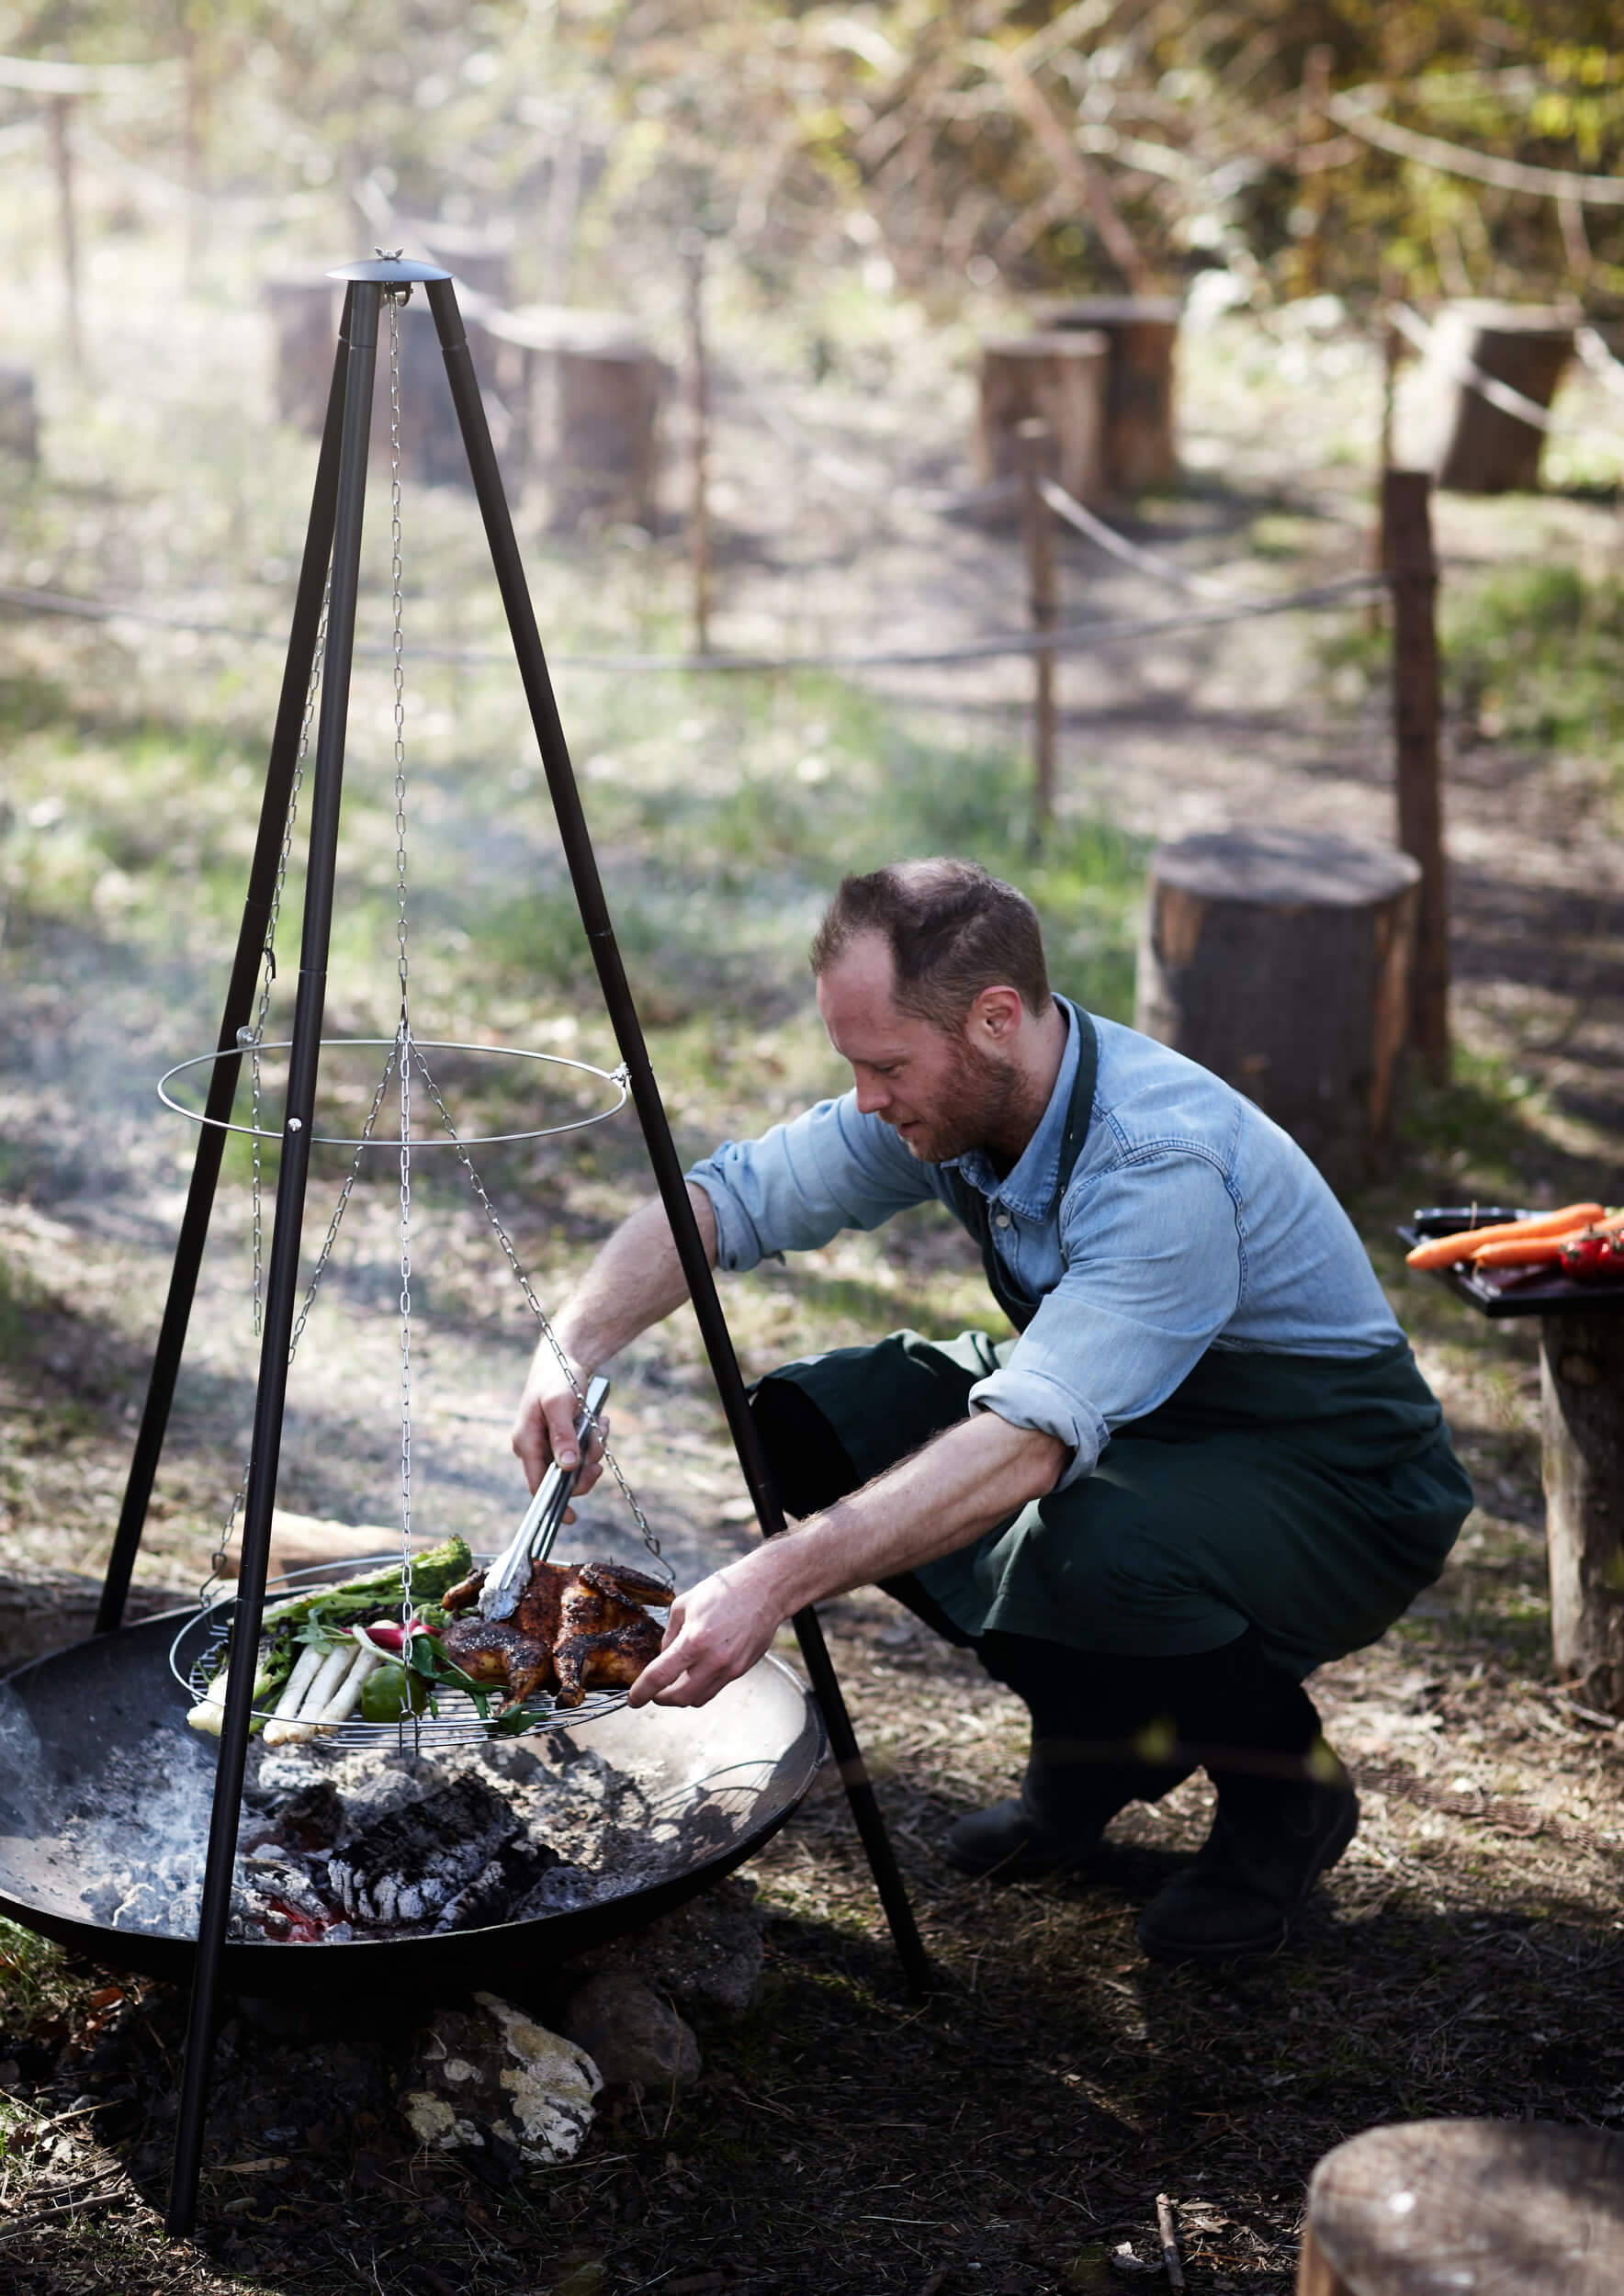 Chef cooking over fire